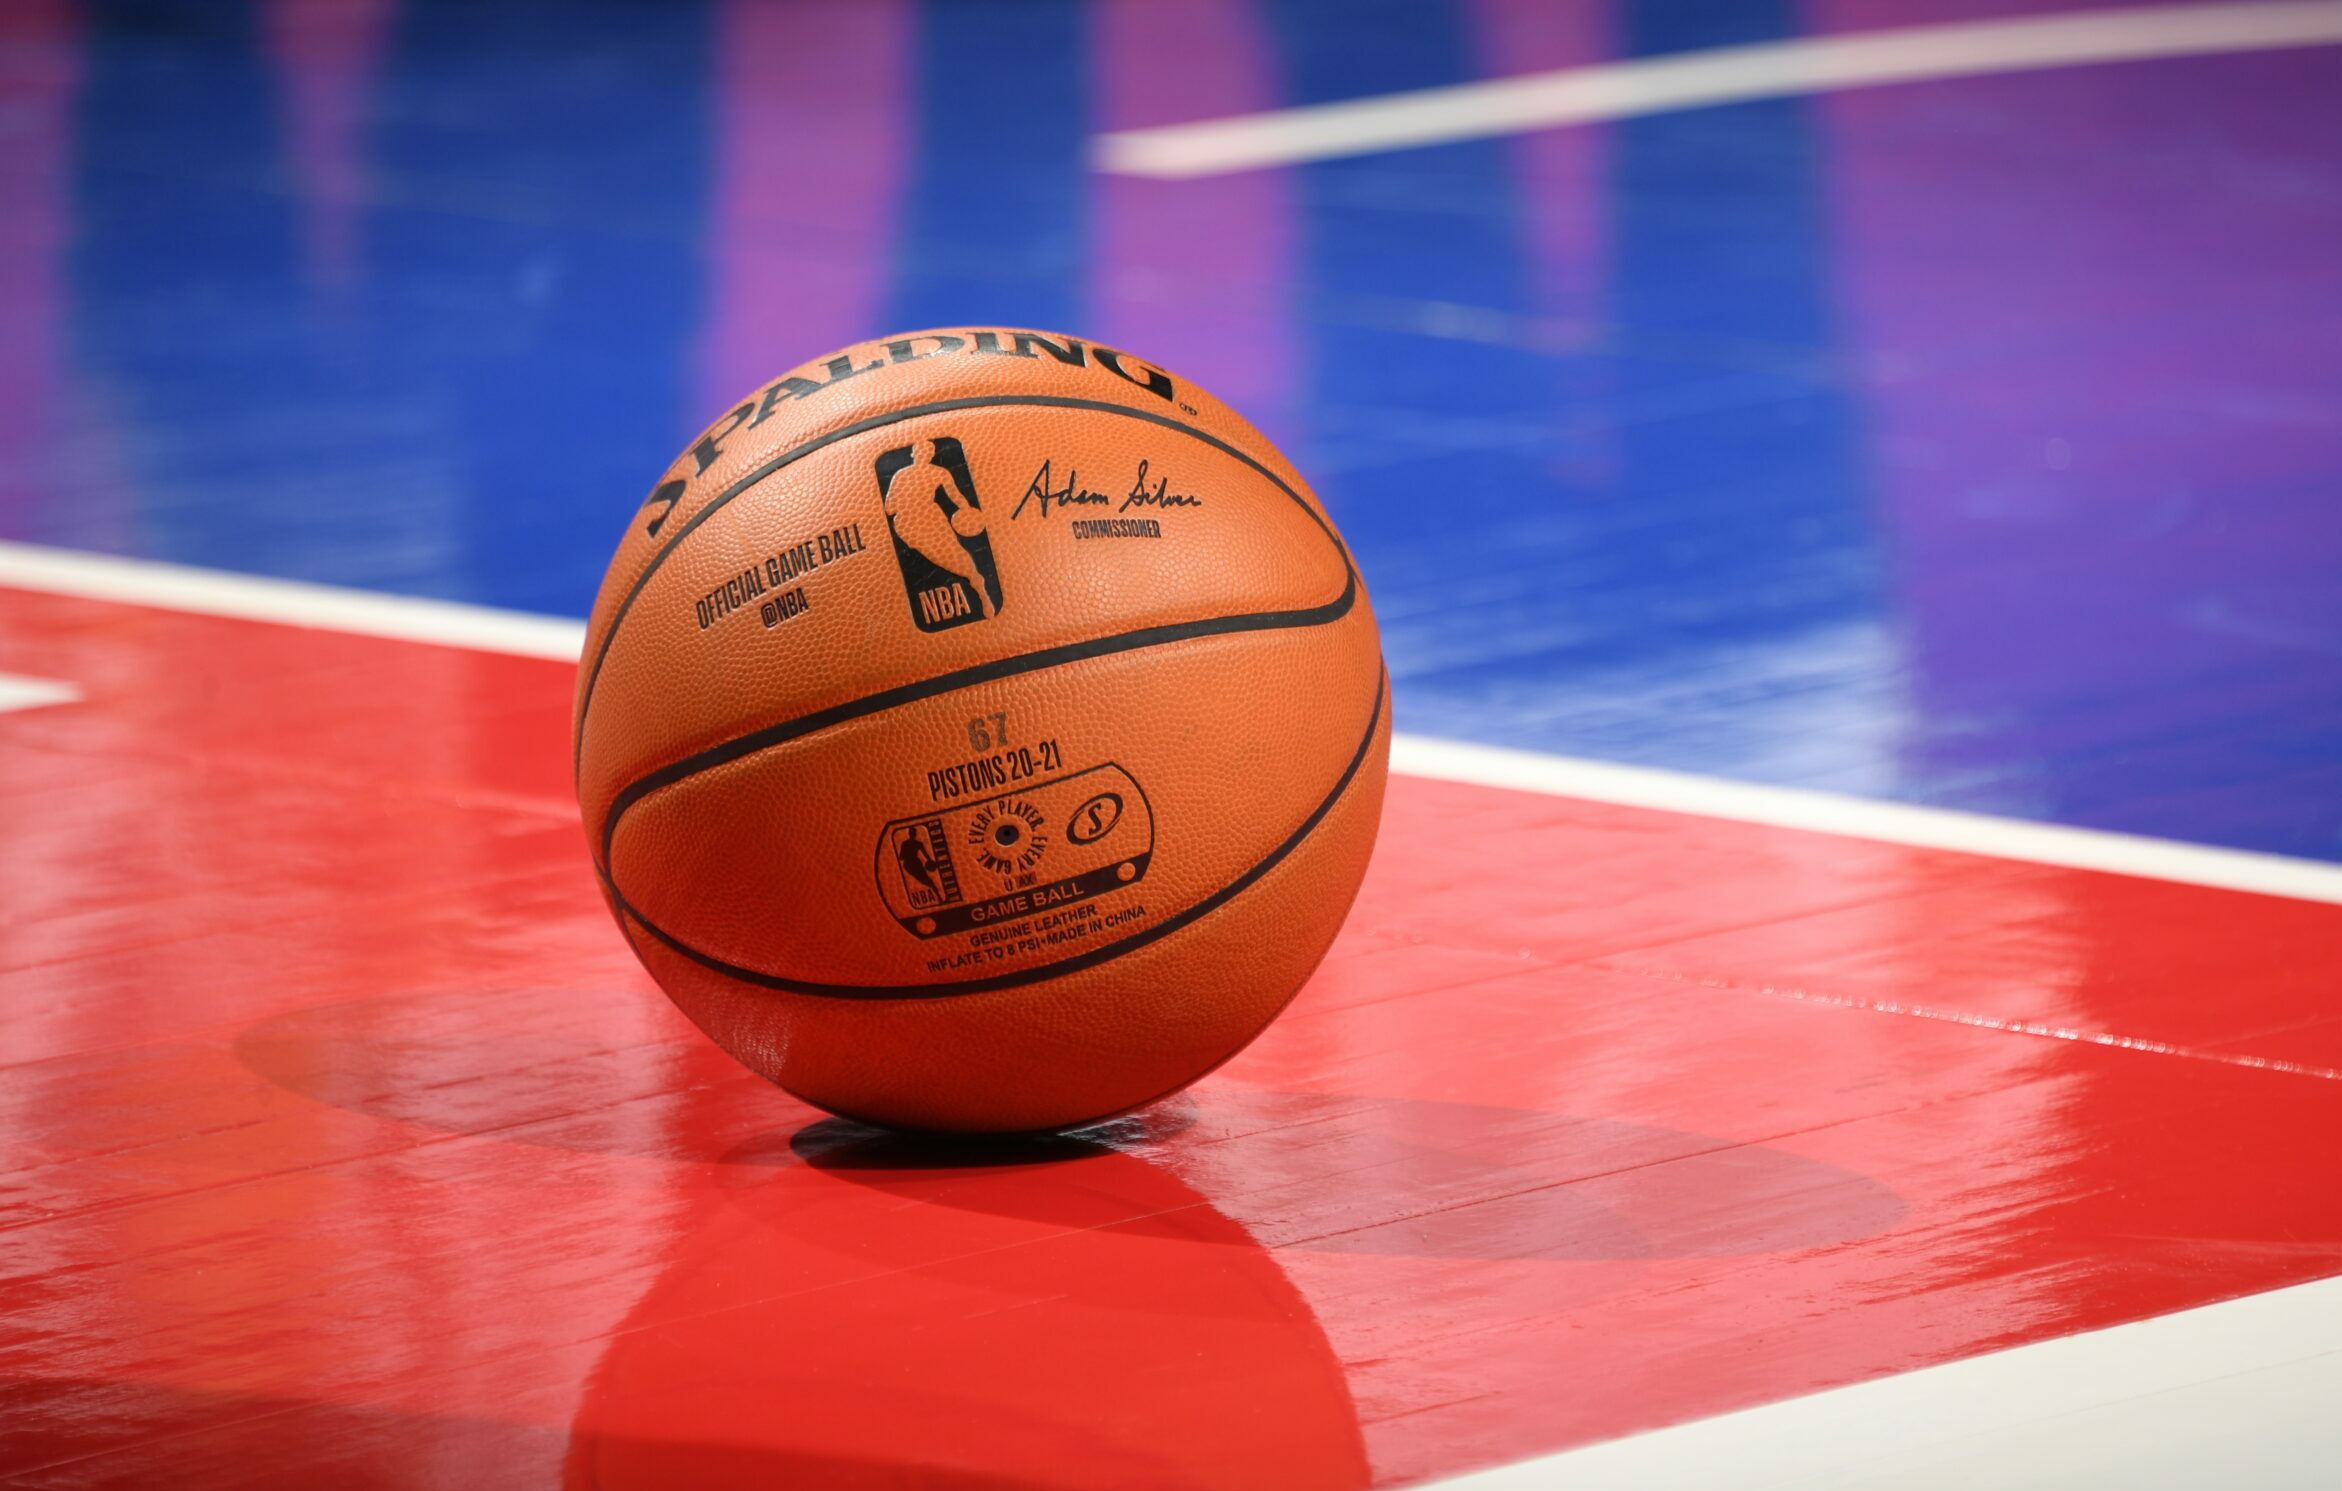 76ers vs. Thunder postponed in accordance with league's Health and Safety Protocols